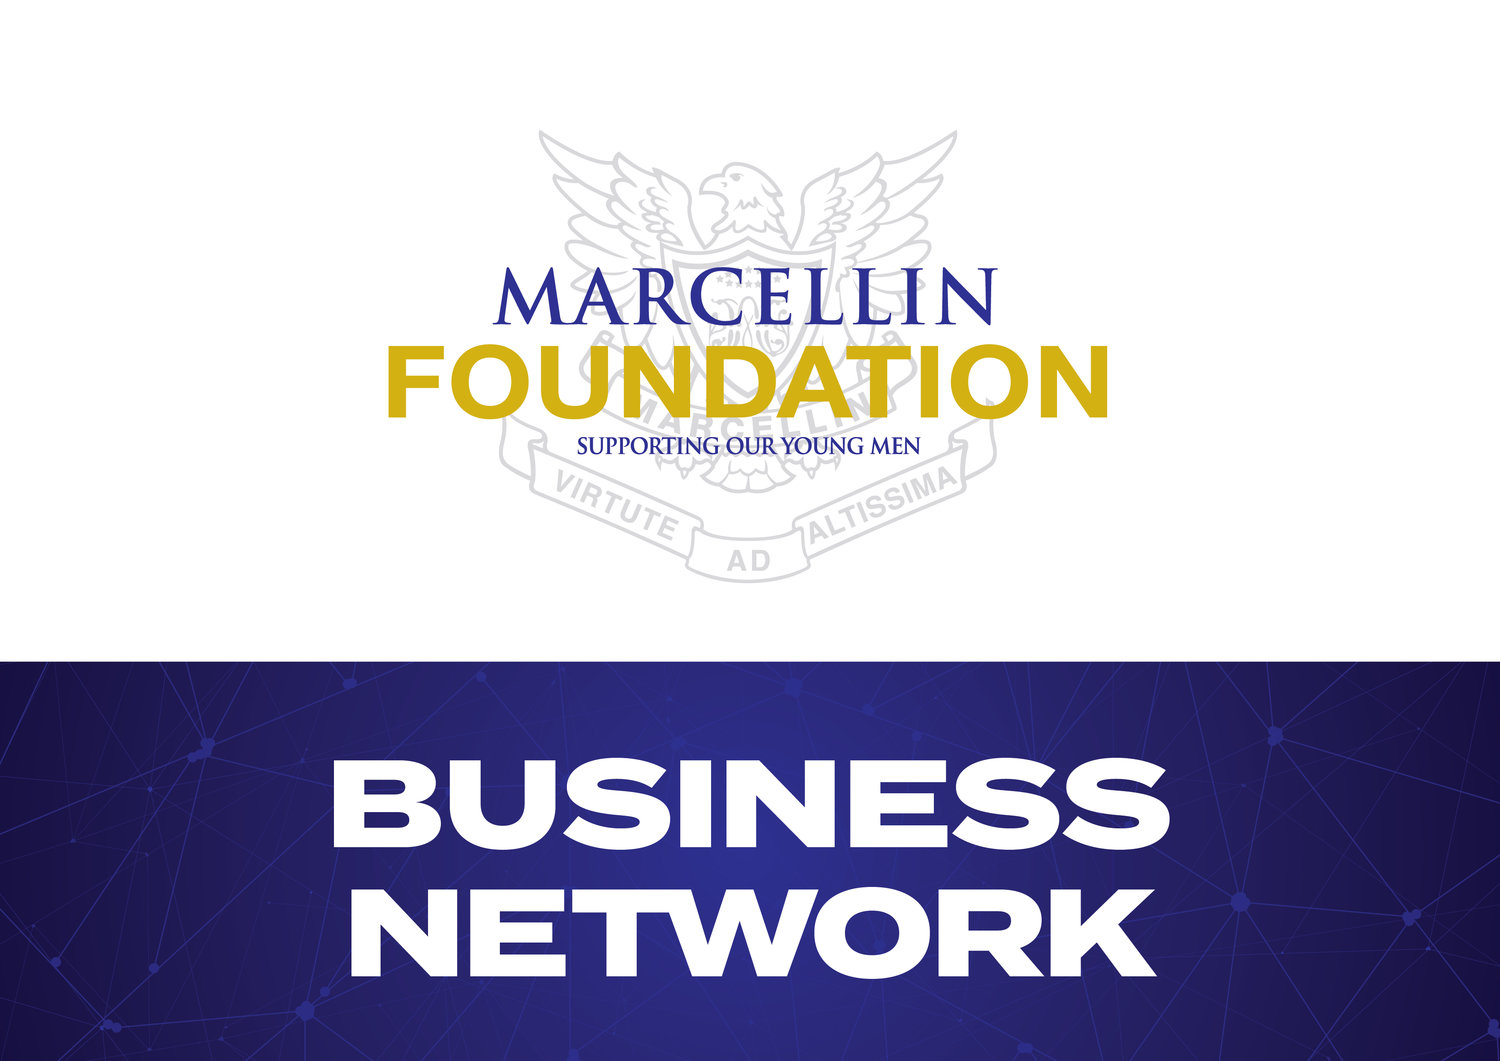 Marcellin Business Network